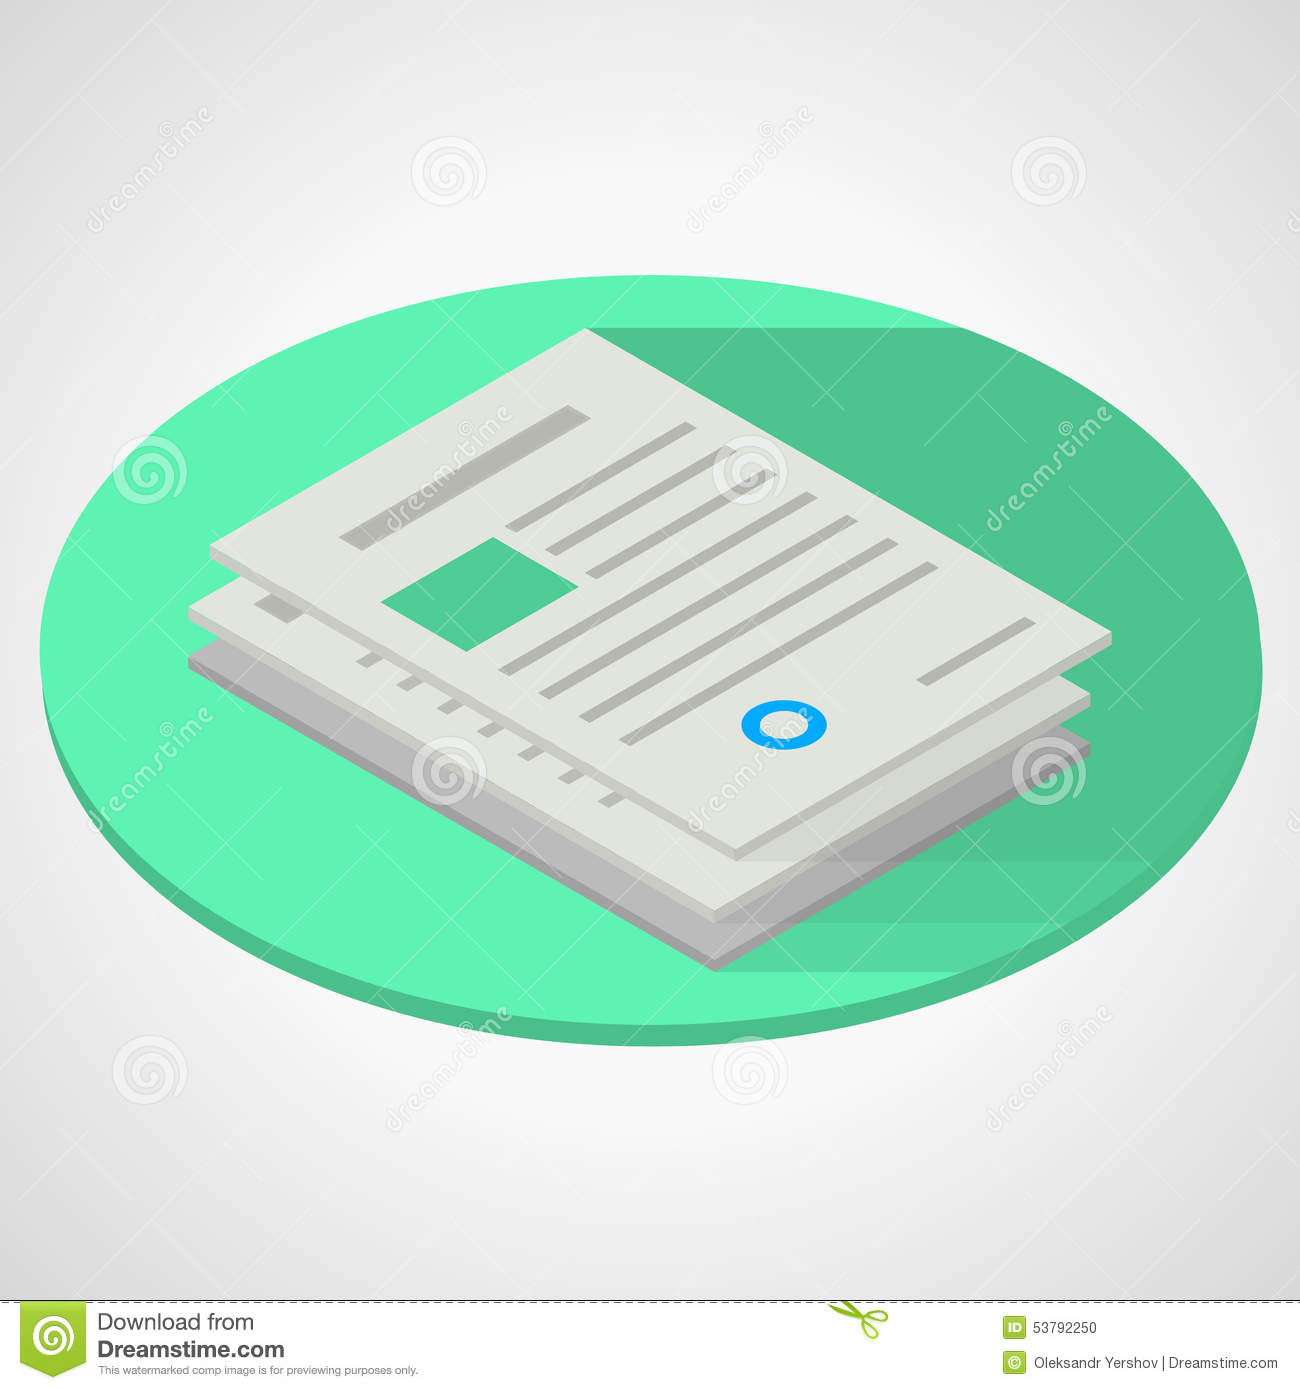 Isometric Flat Illustration Of Documents Paper Stock